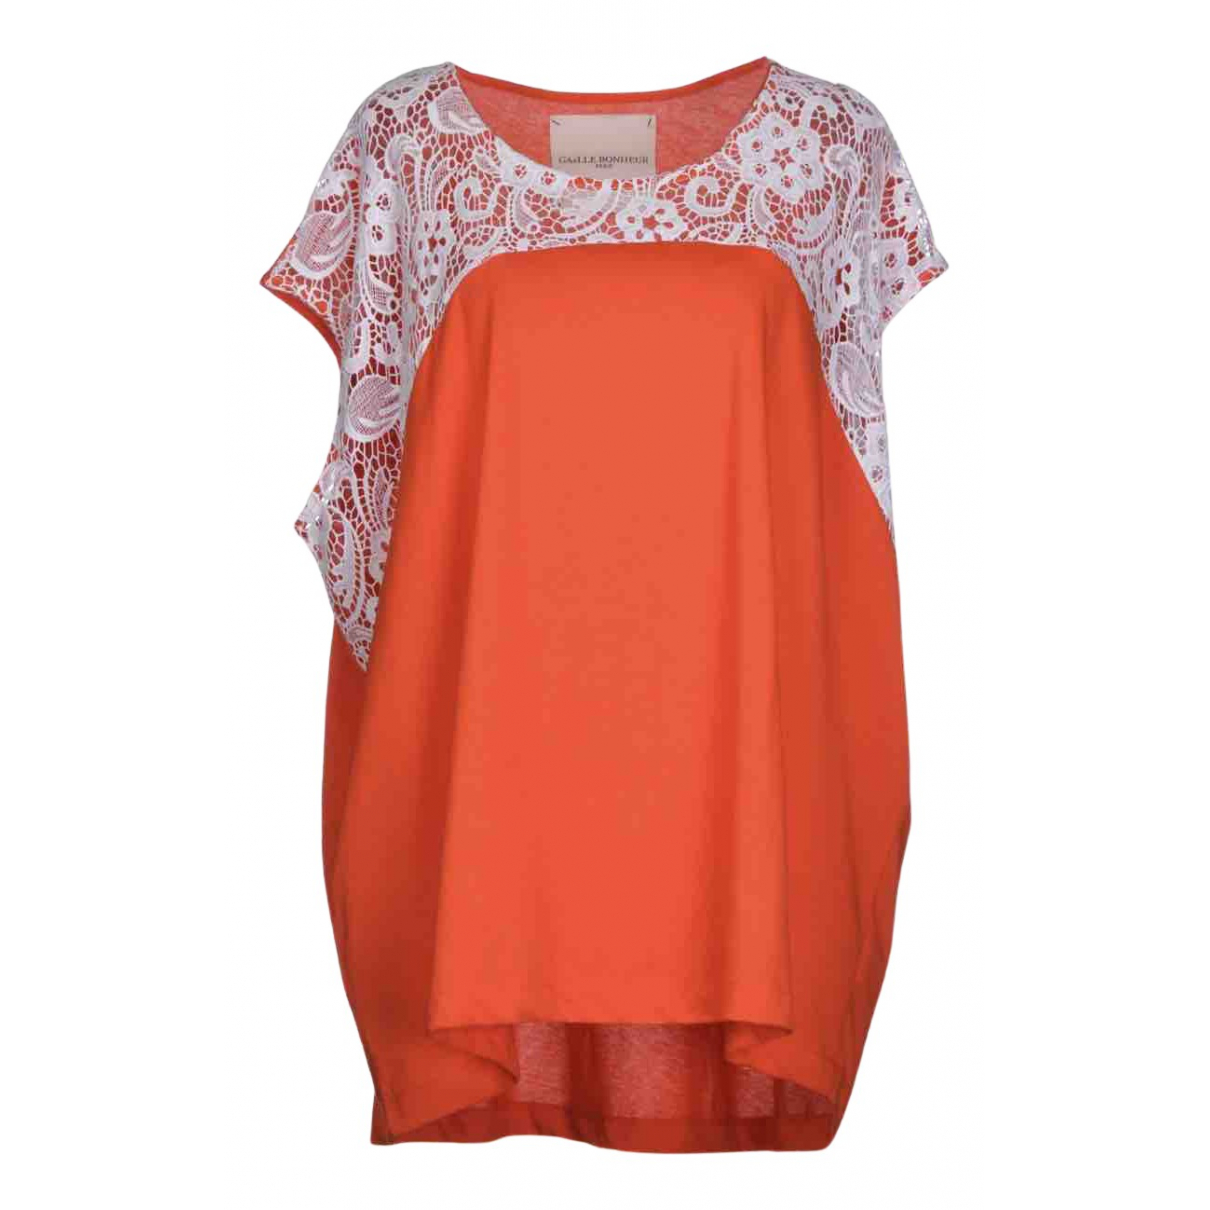 Gaelle Paris N Red Cotton  top for Women 1 0-5